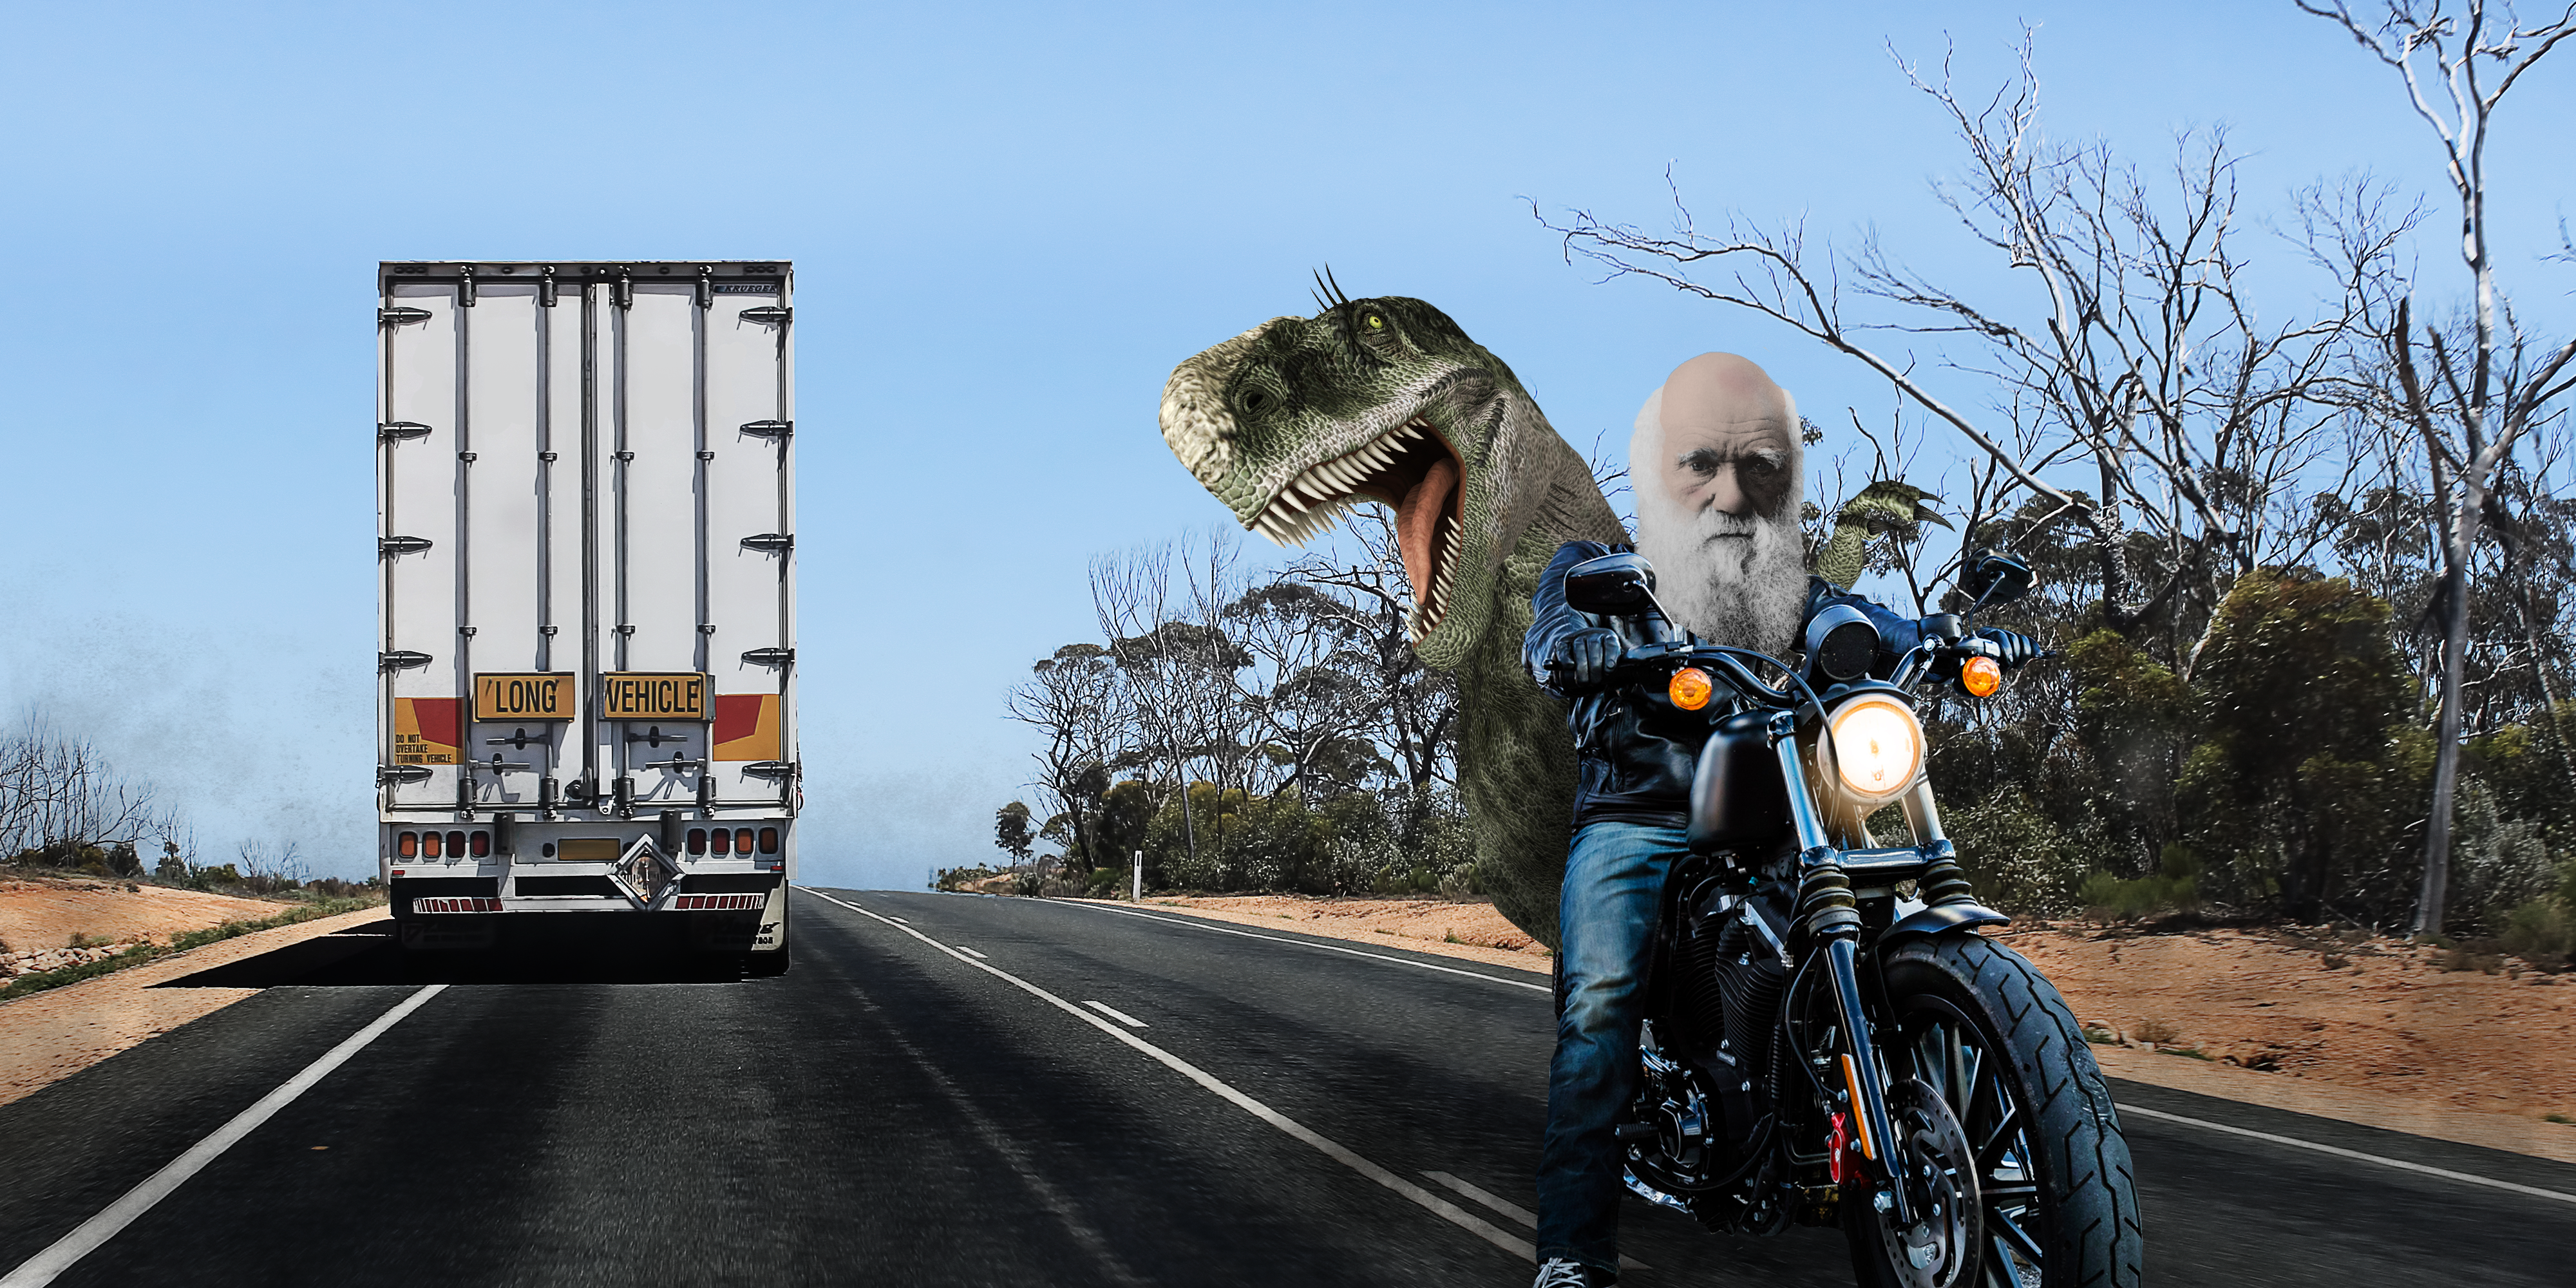 What evolution and motorcycles have in common: let's take a ride across Australia